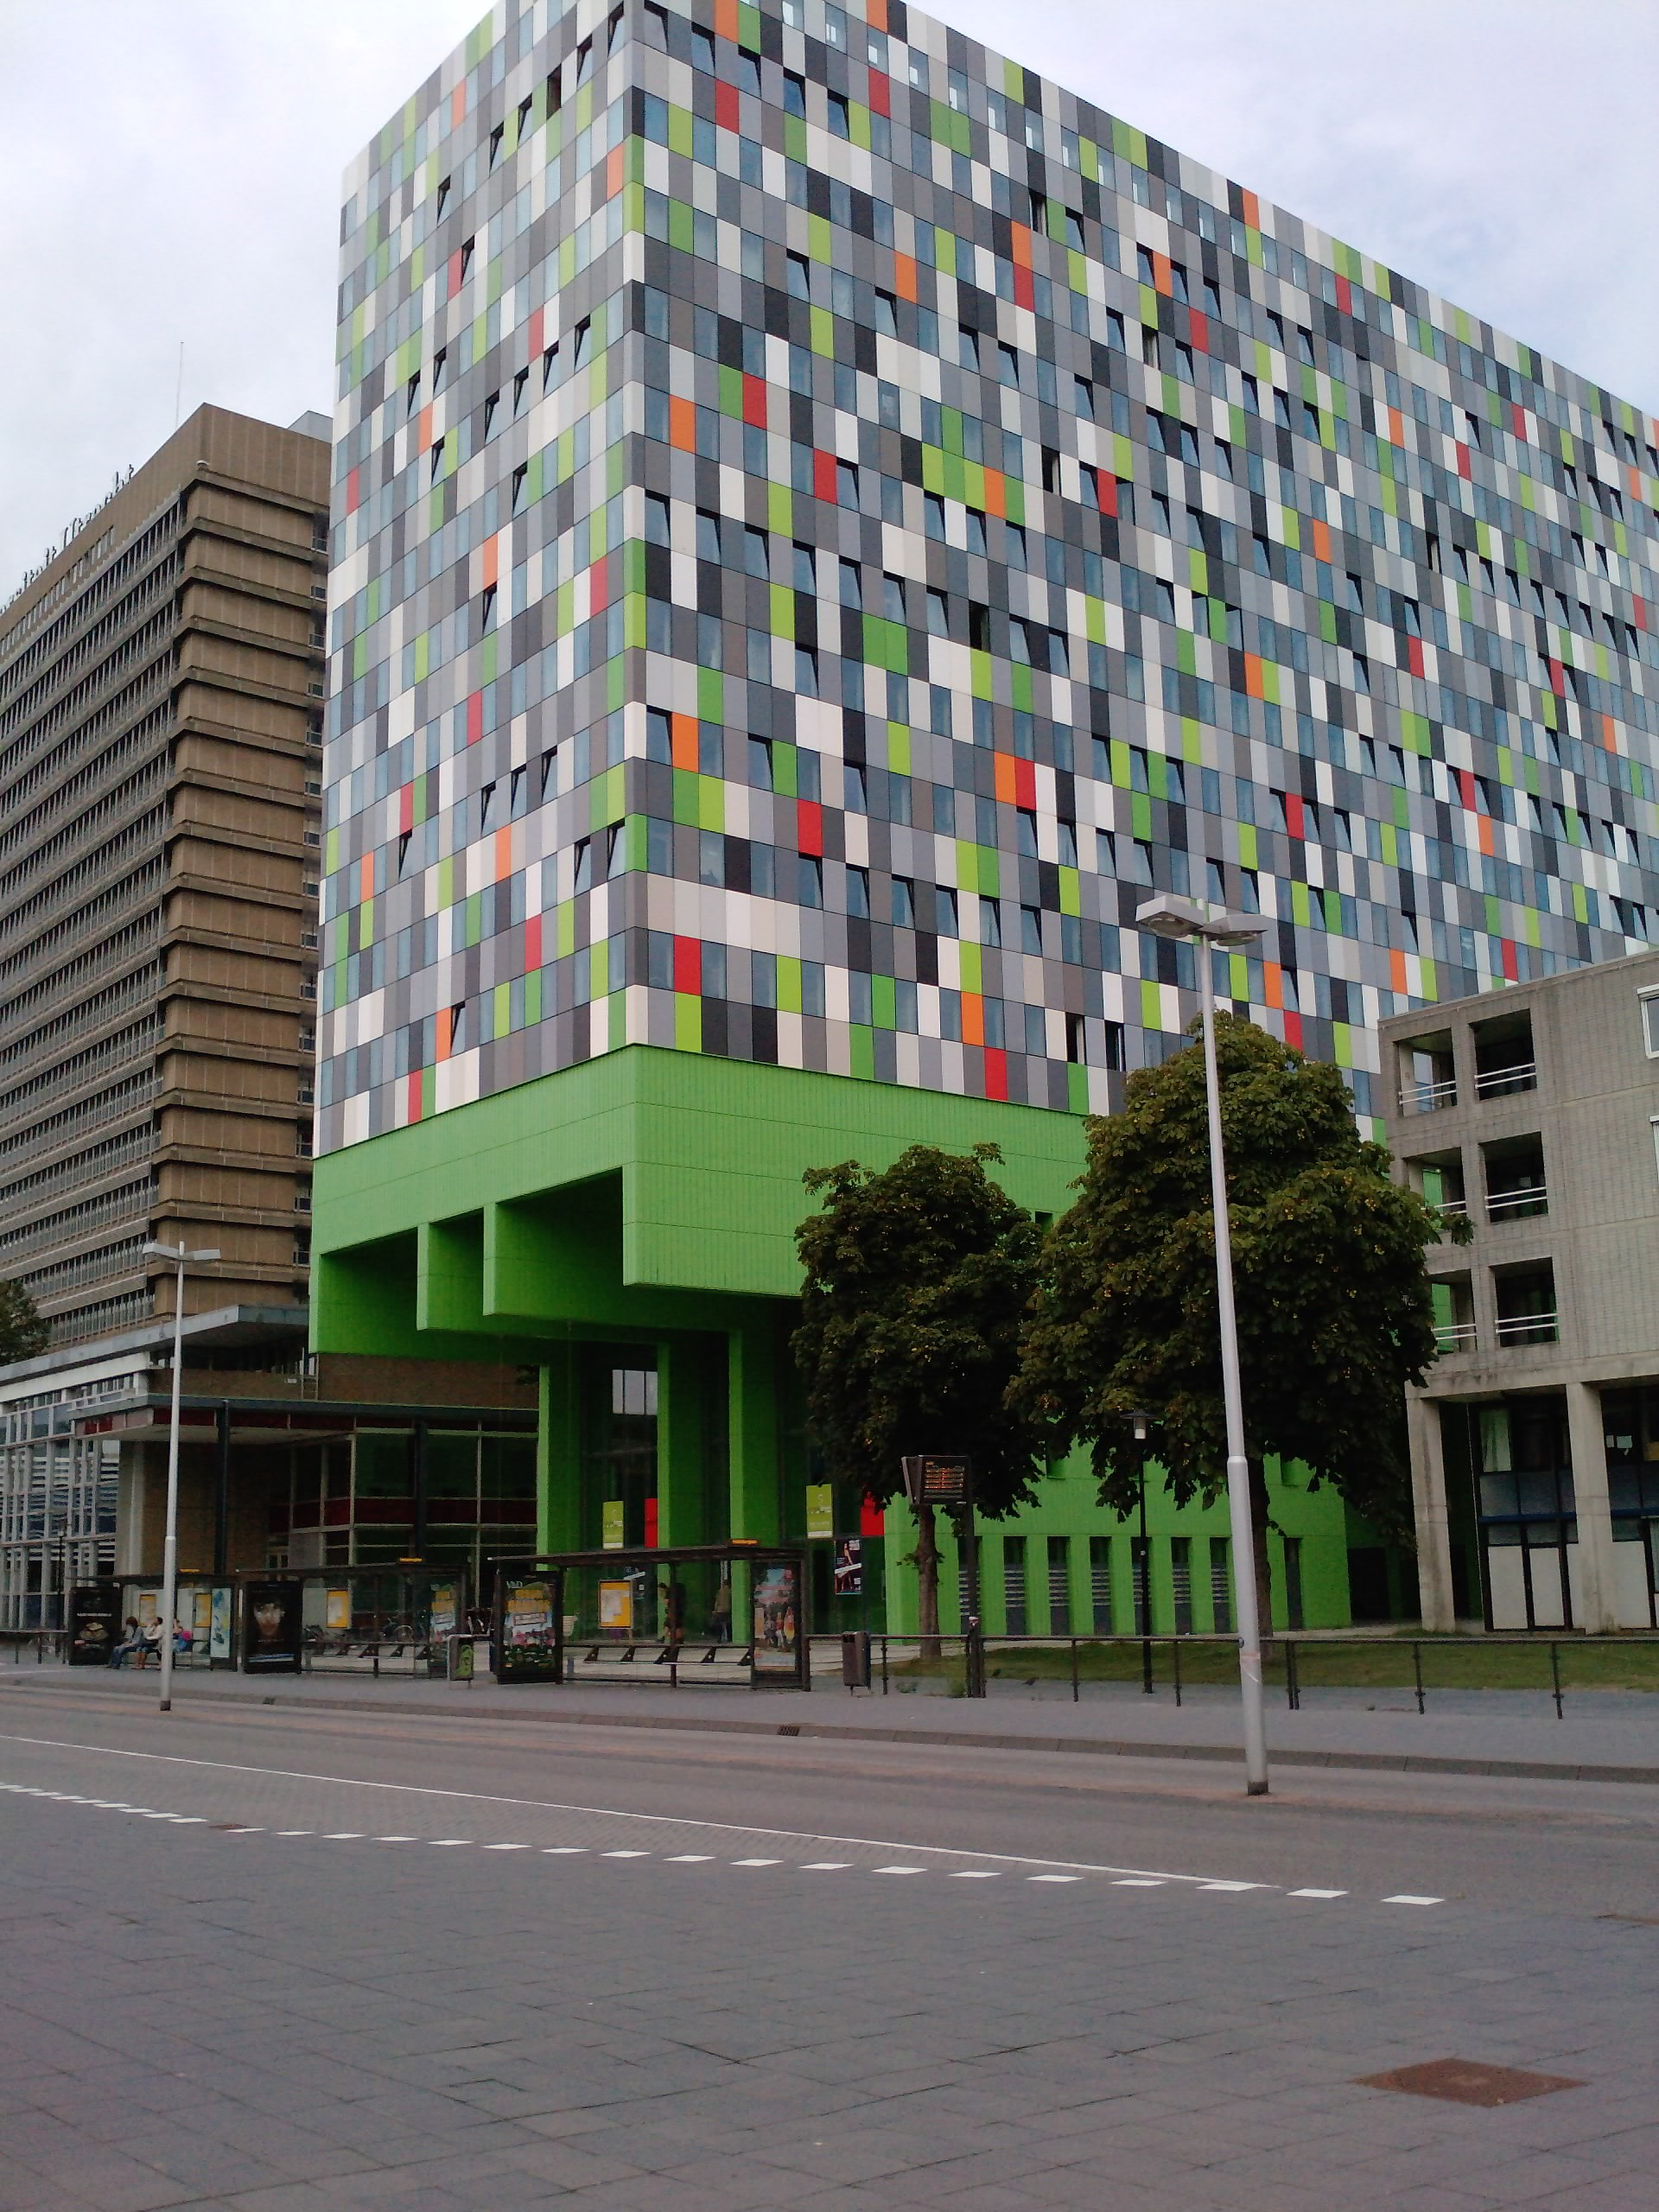 Colorful Building at u of